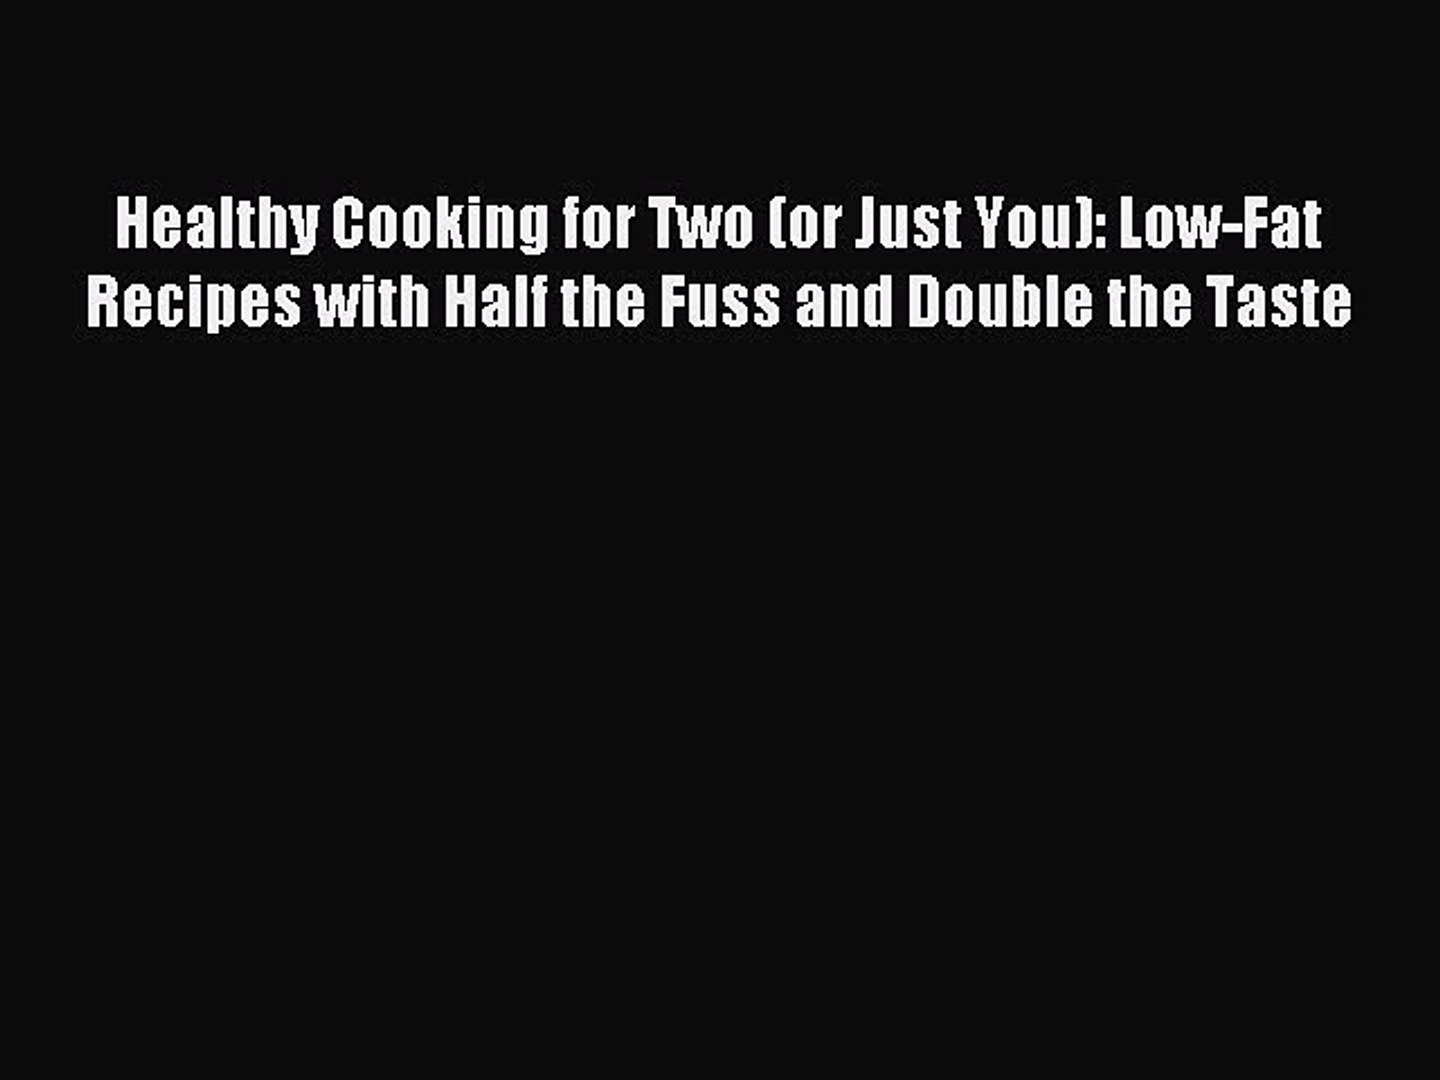 or Just You Low-Fat Recipes with Half the Fuss and Double the Taste Healthy Cooking for Two